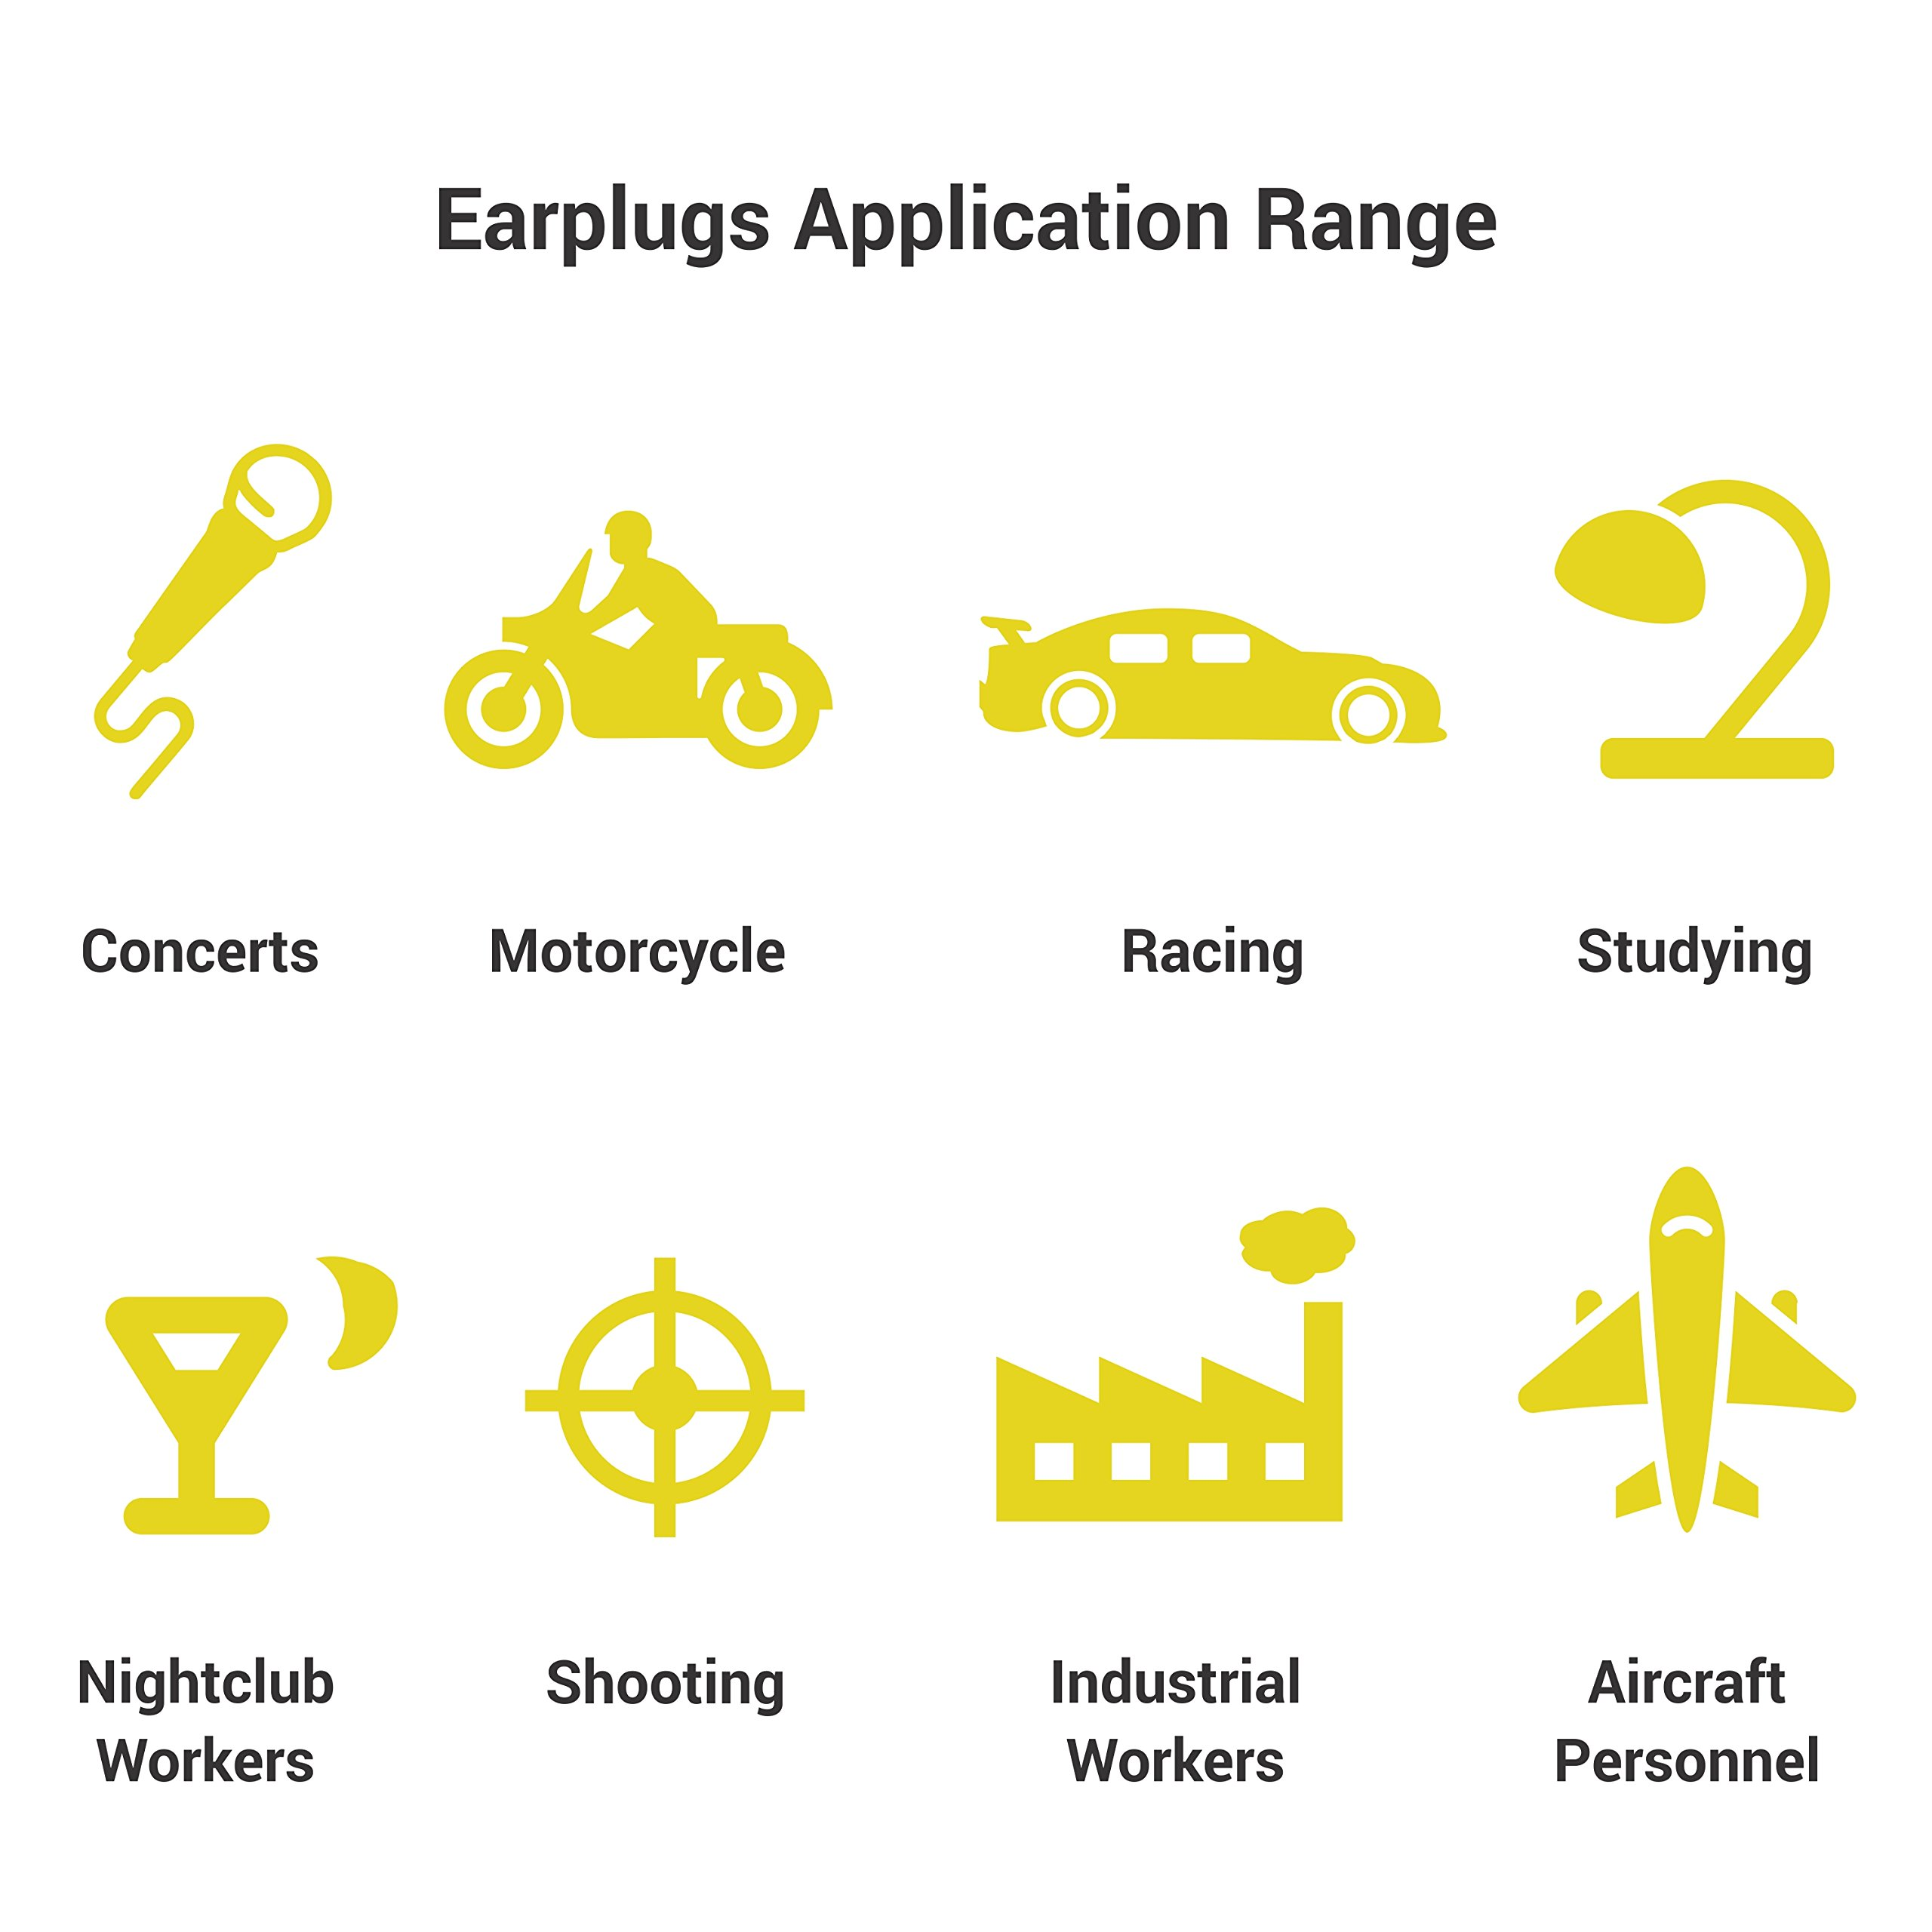 High Fidelity Reusable Earplugs By HearWard: Noise Reduction Ear Plugs For Sleeping, Concerts, Racing, Study & Travel – Smaller Earplugs & Water Blocking Swimming Ear Plugs Included by Hearward (Image #8)